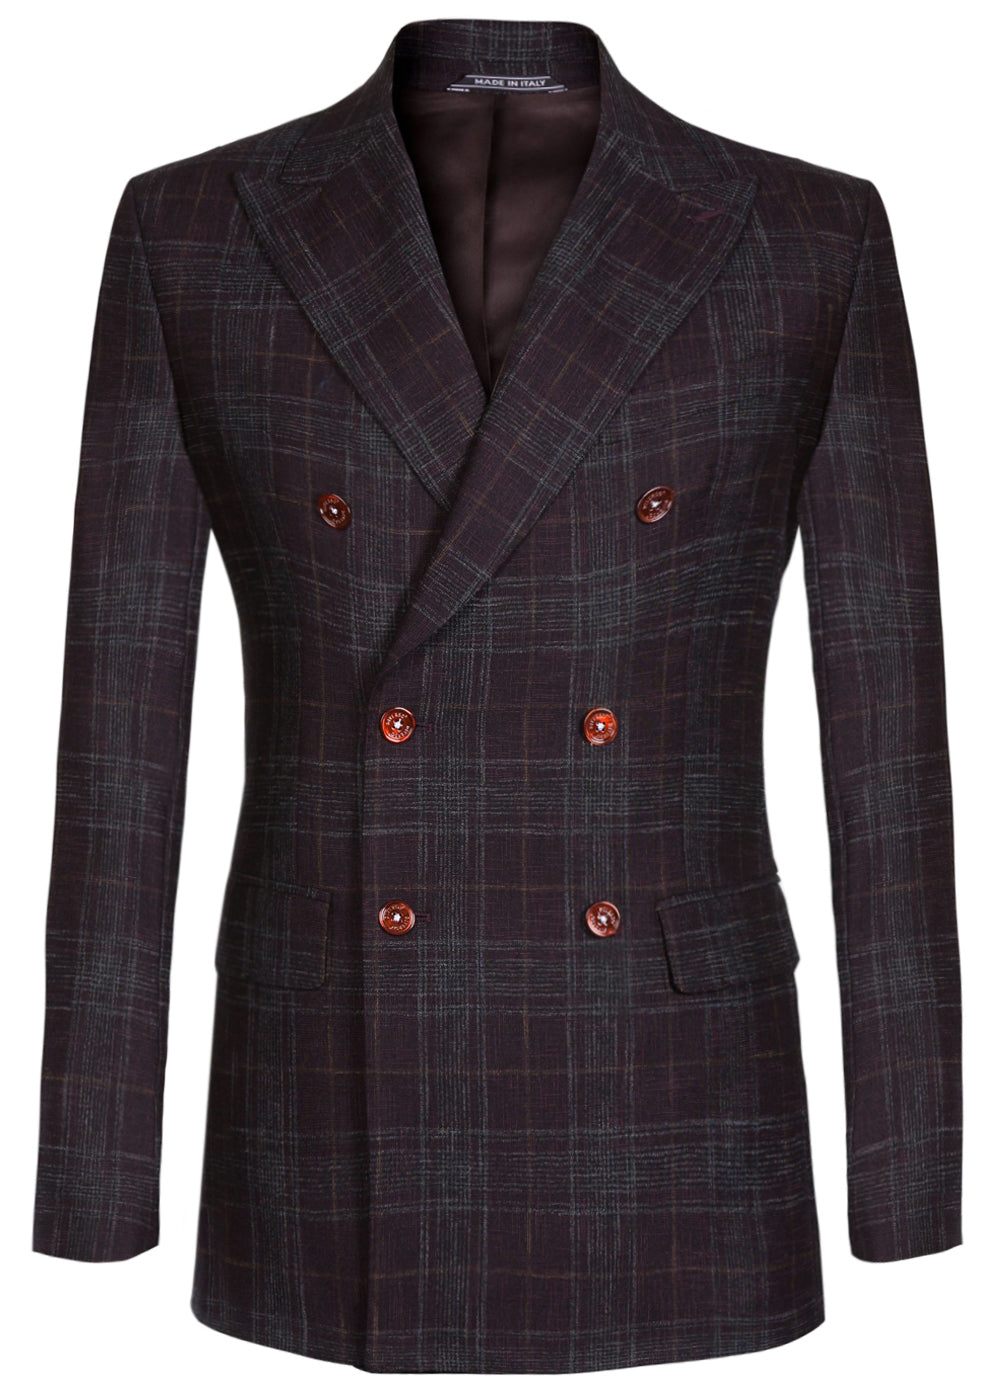 Maroon Rustic Check Double Breasted Wool Blazer